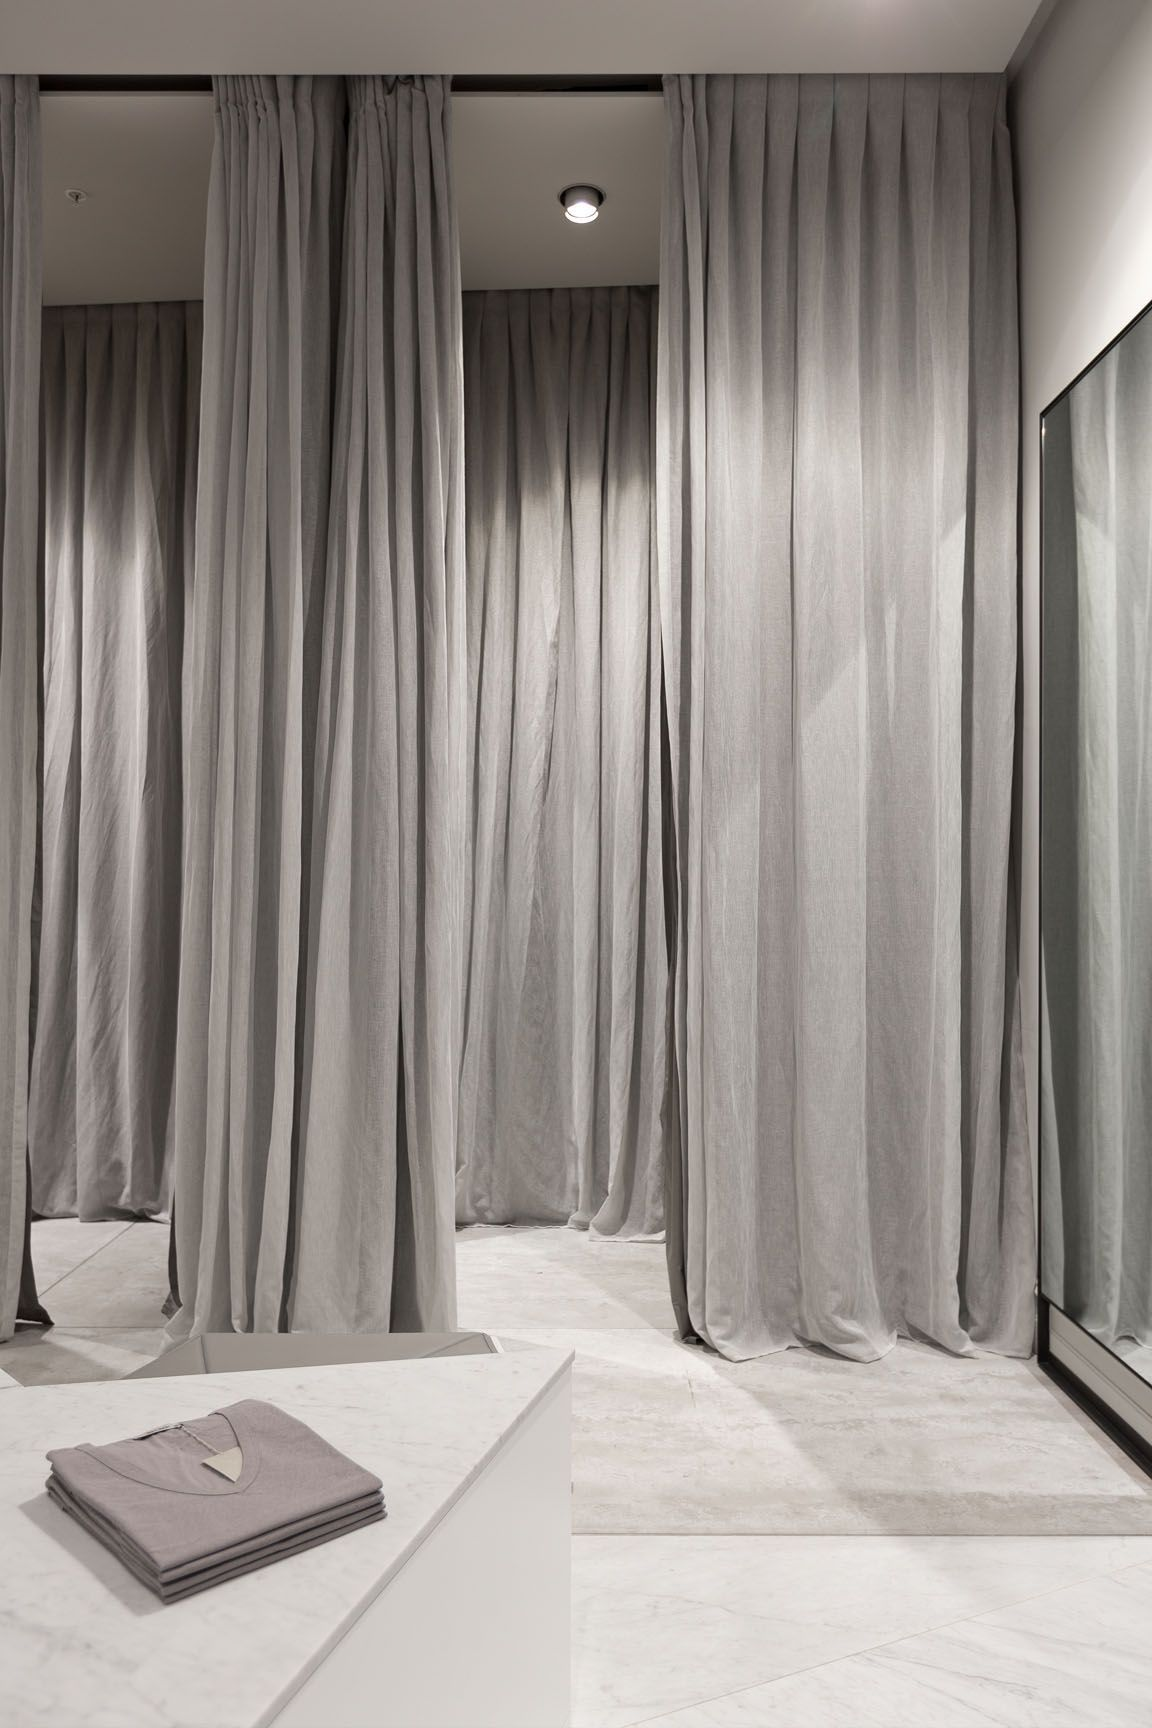 Fitting Room Designs For Retail: Fitting Room Drapes - Installation Reference